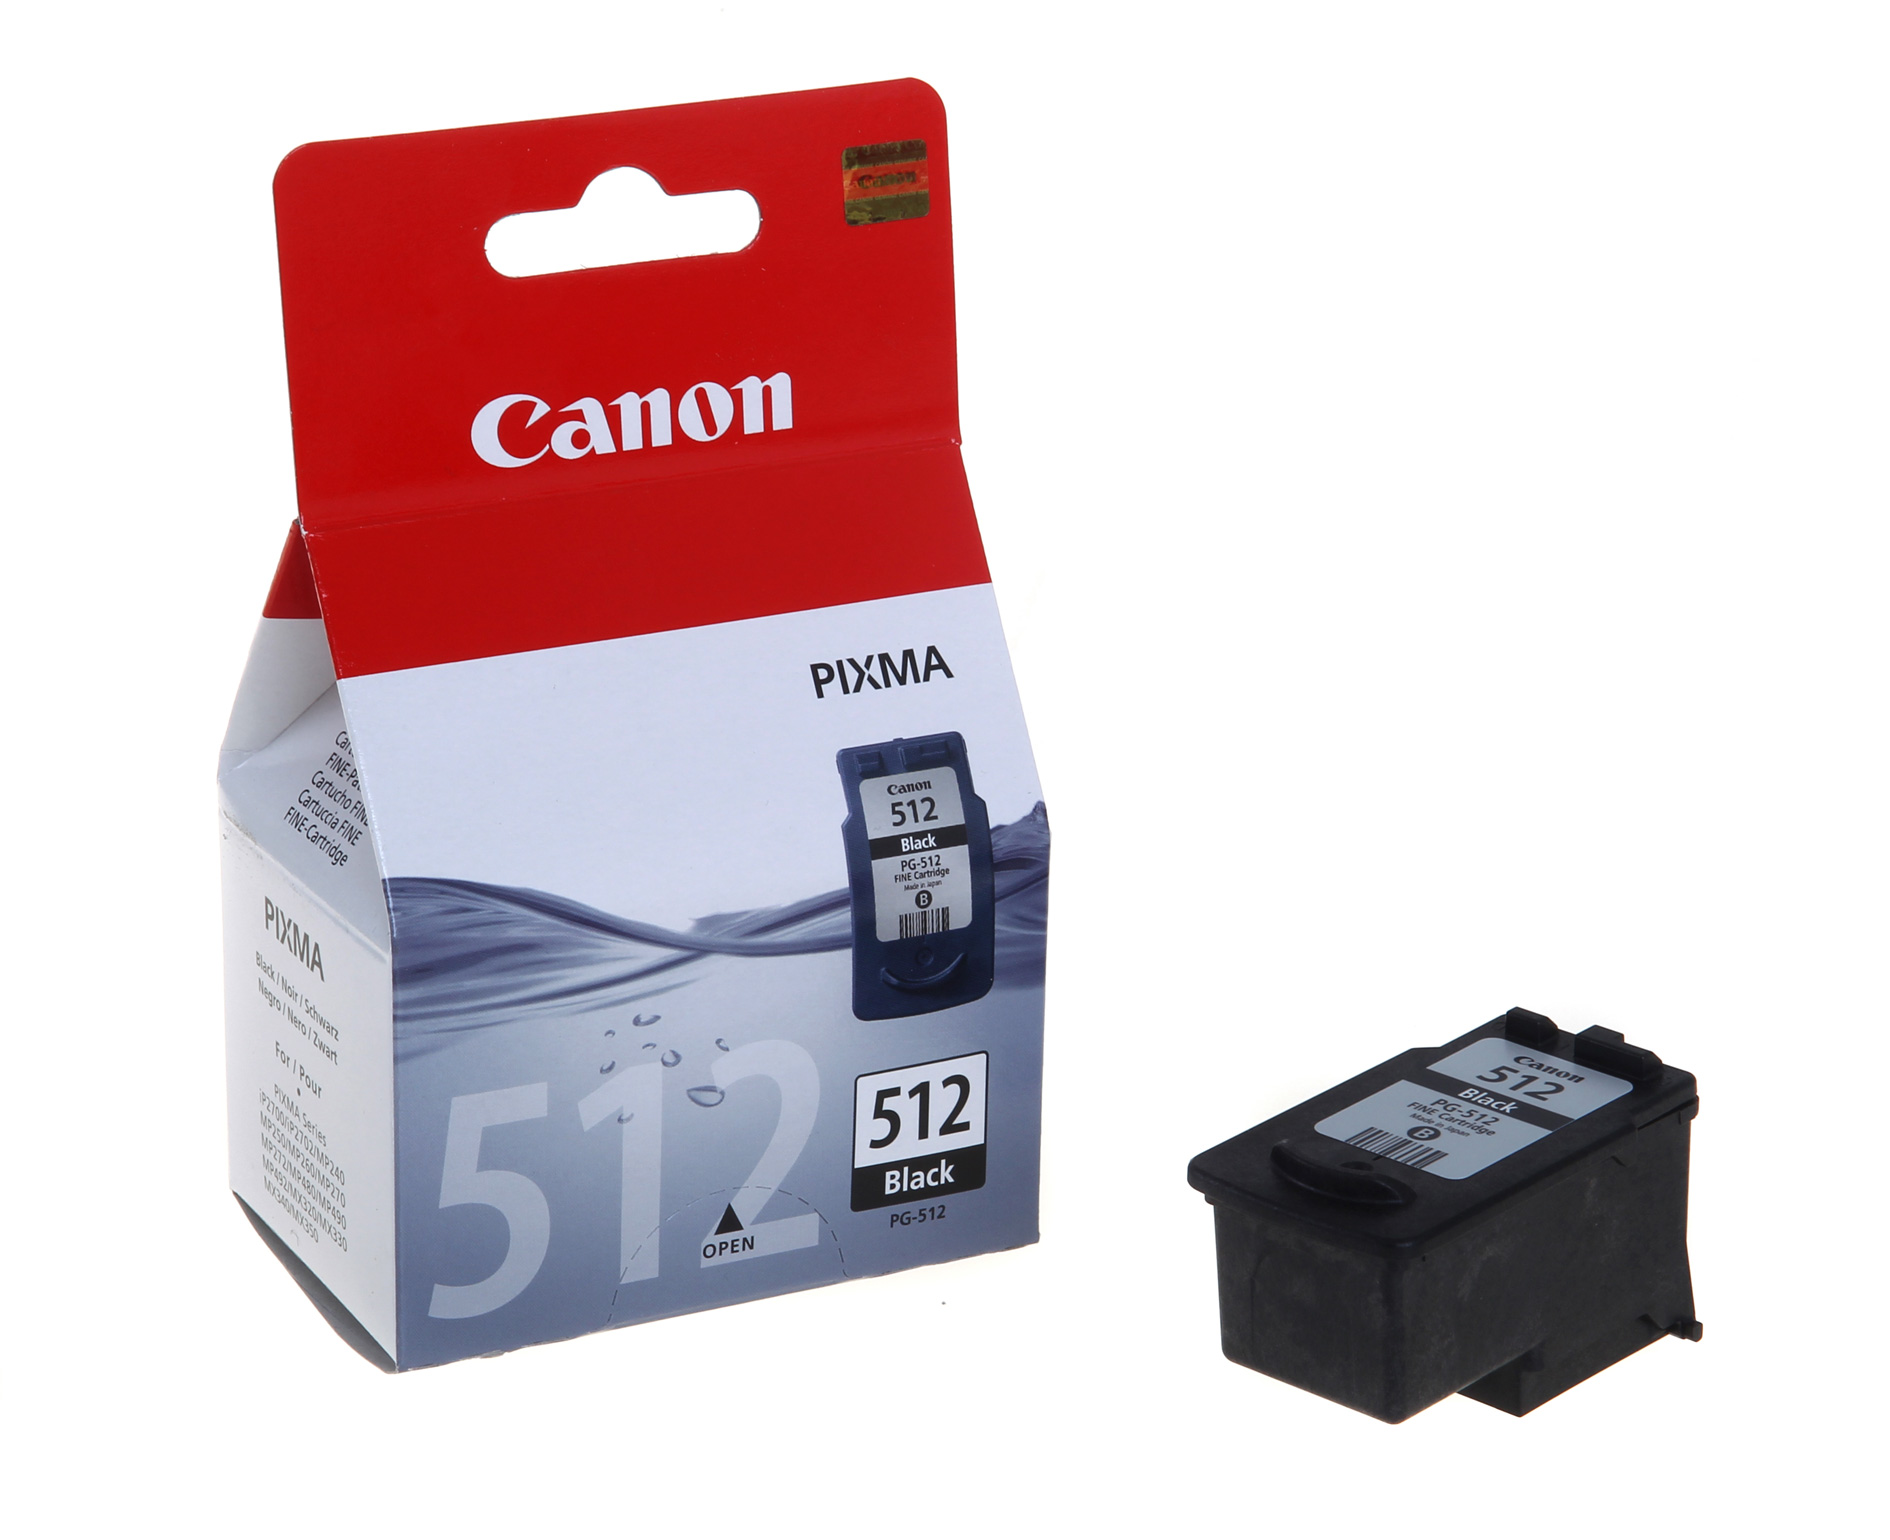 Canon PG512 Black High Yield Ink Cartridge